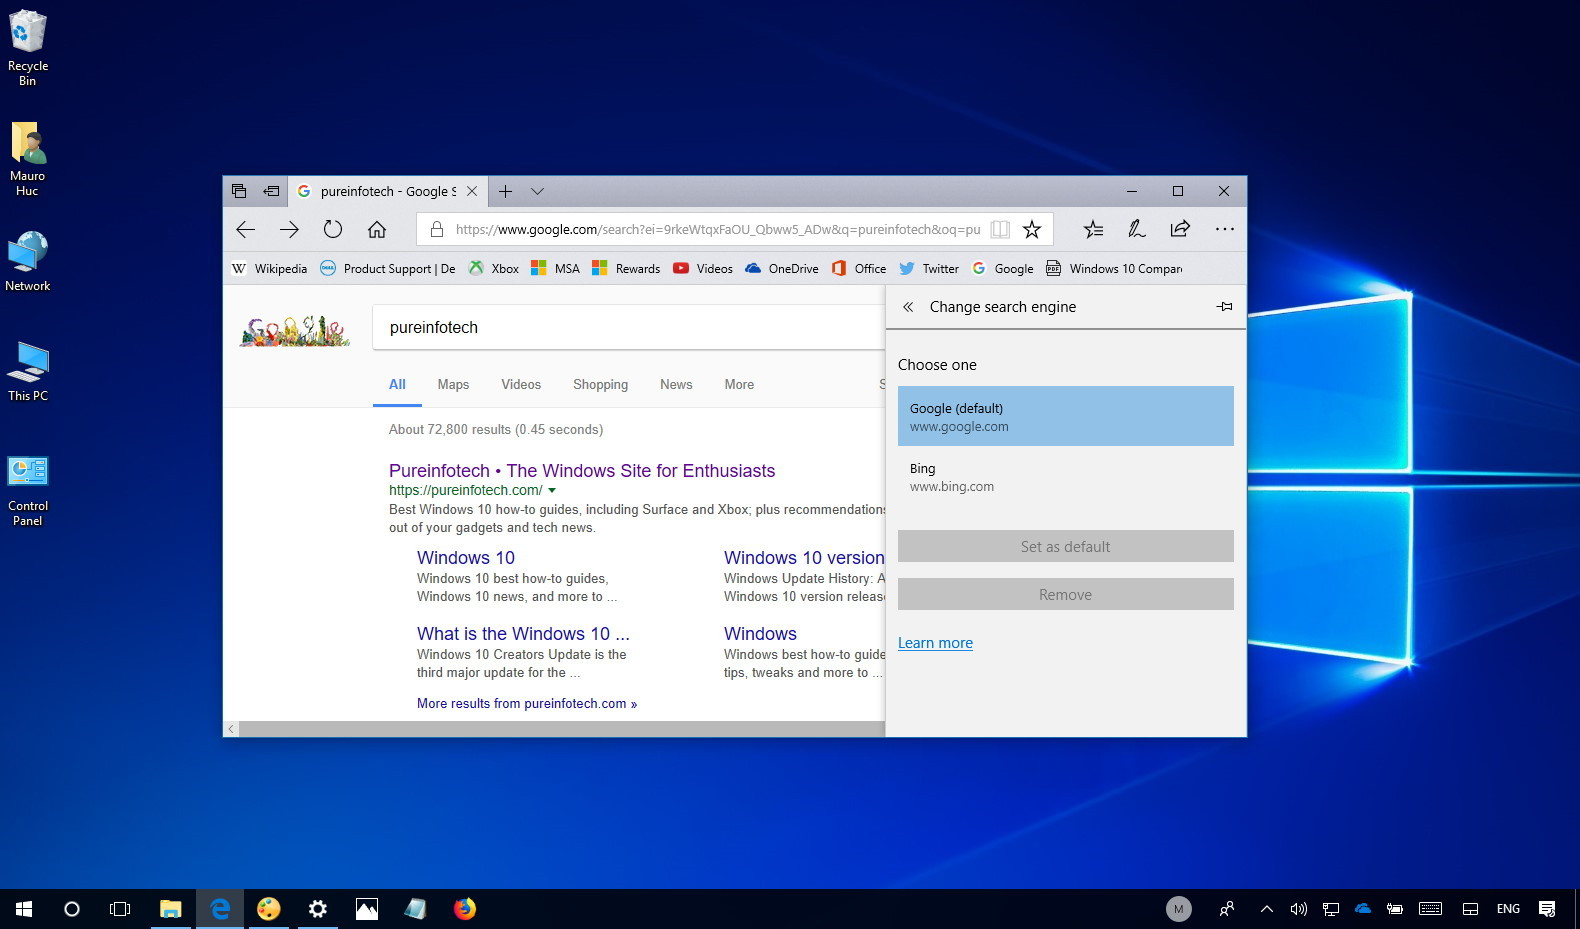 Microsoft Edge with Google as default search engine